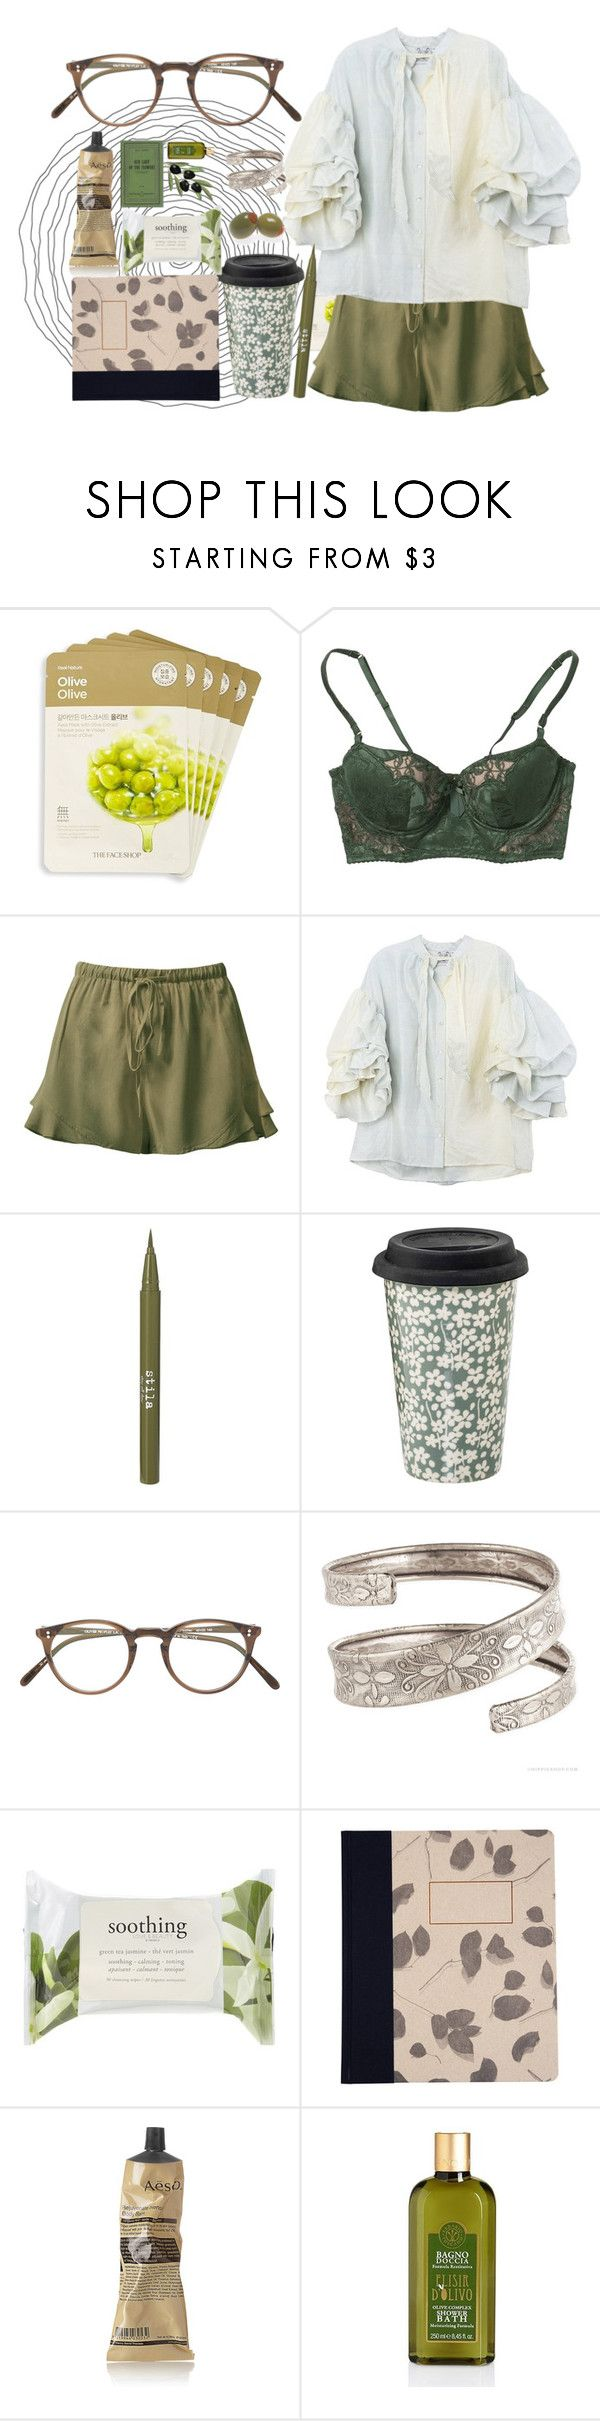 """""""Bez tytułu #534"""" by cute-but-psycho-123 ❤ liked on Polyvore featuring The Face Shop, Elle Macpherson Intimates, Sans Souci, Rayne, Stila, Oliver Peoples, Forever 21, Susan Castillo and Aesop"""